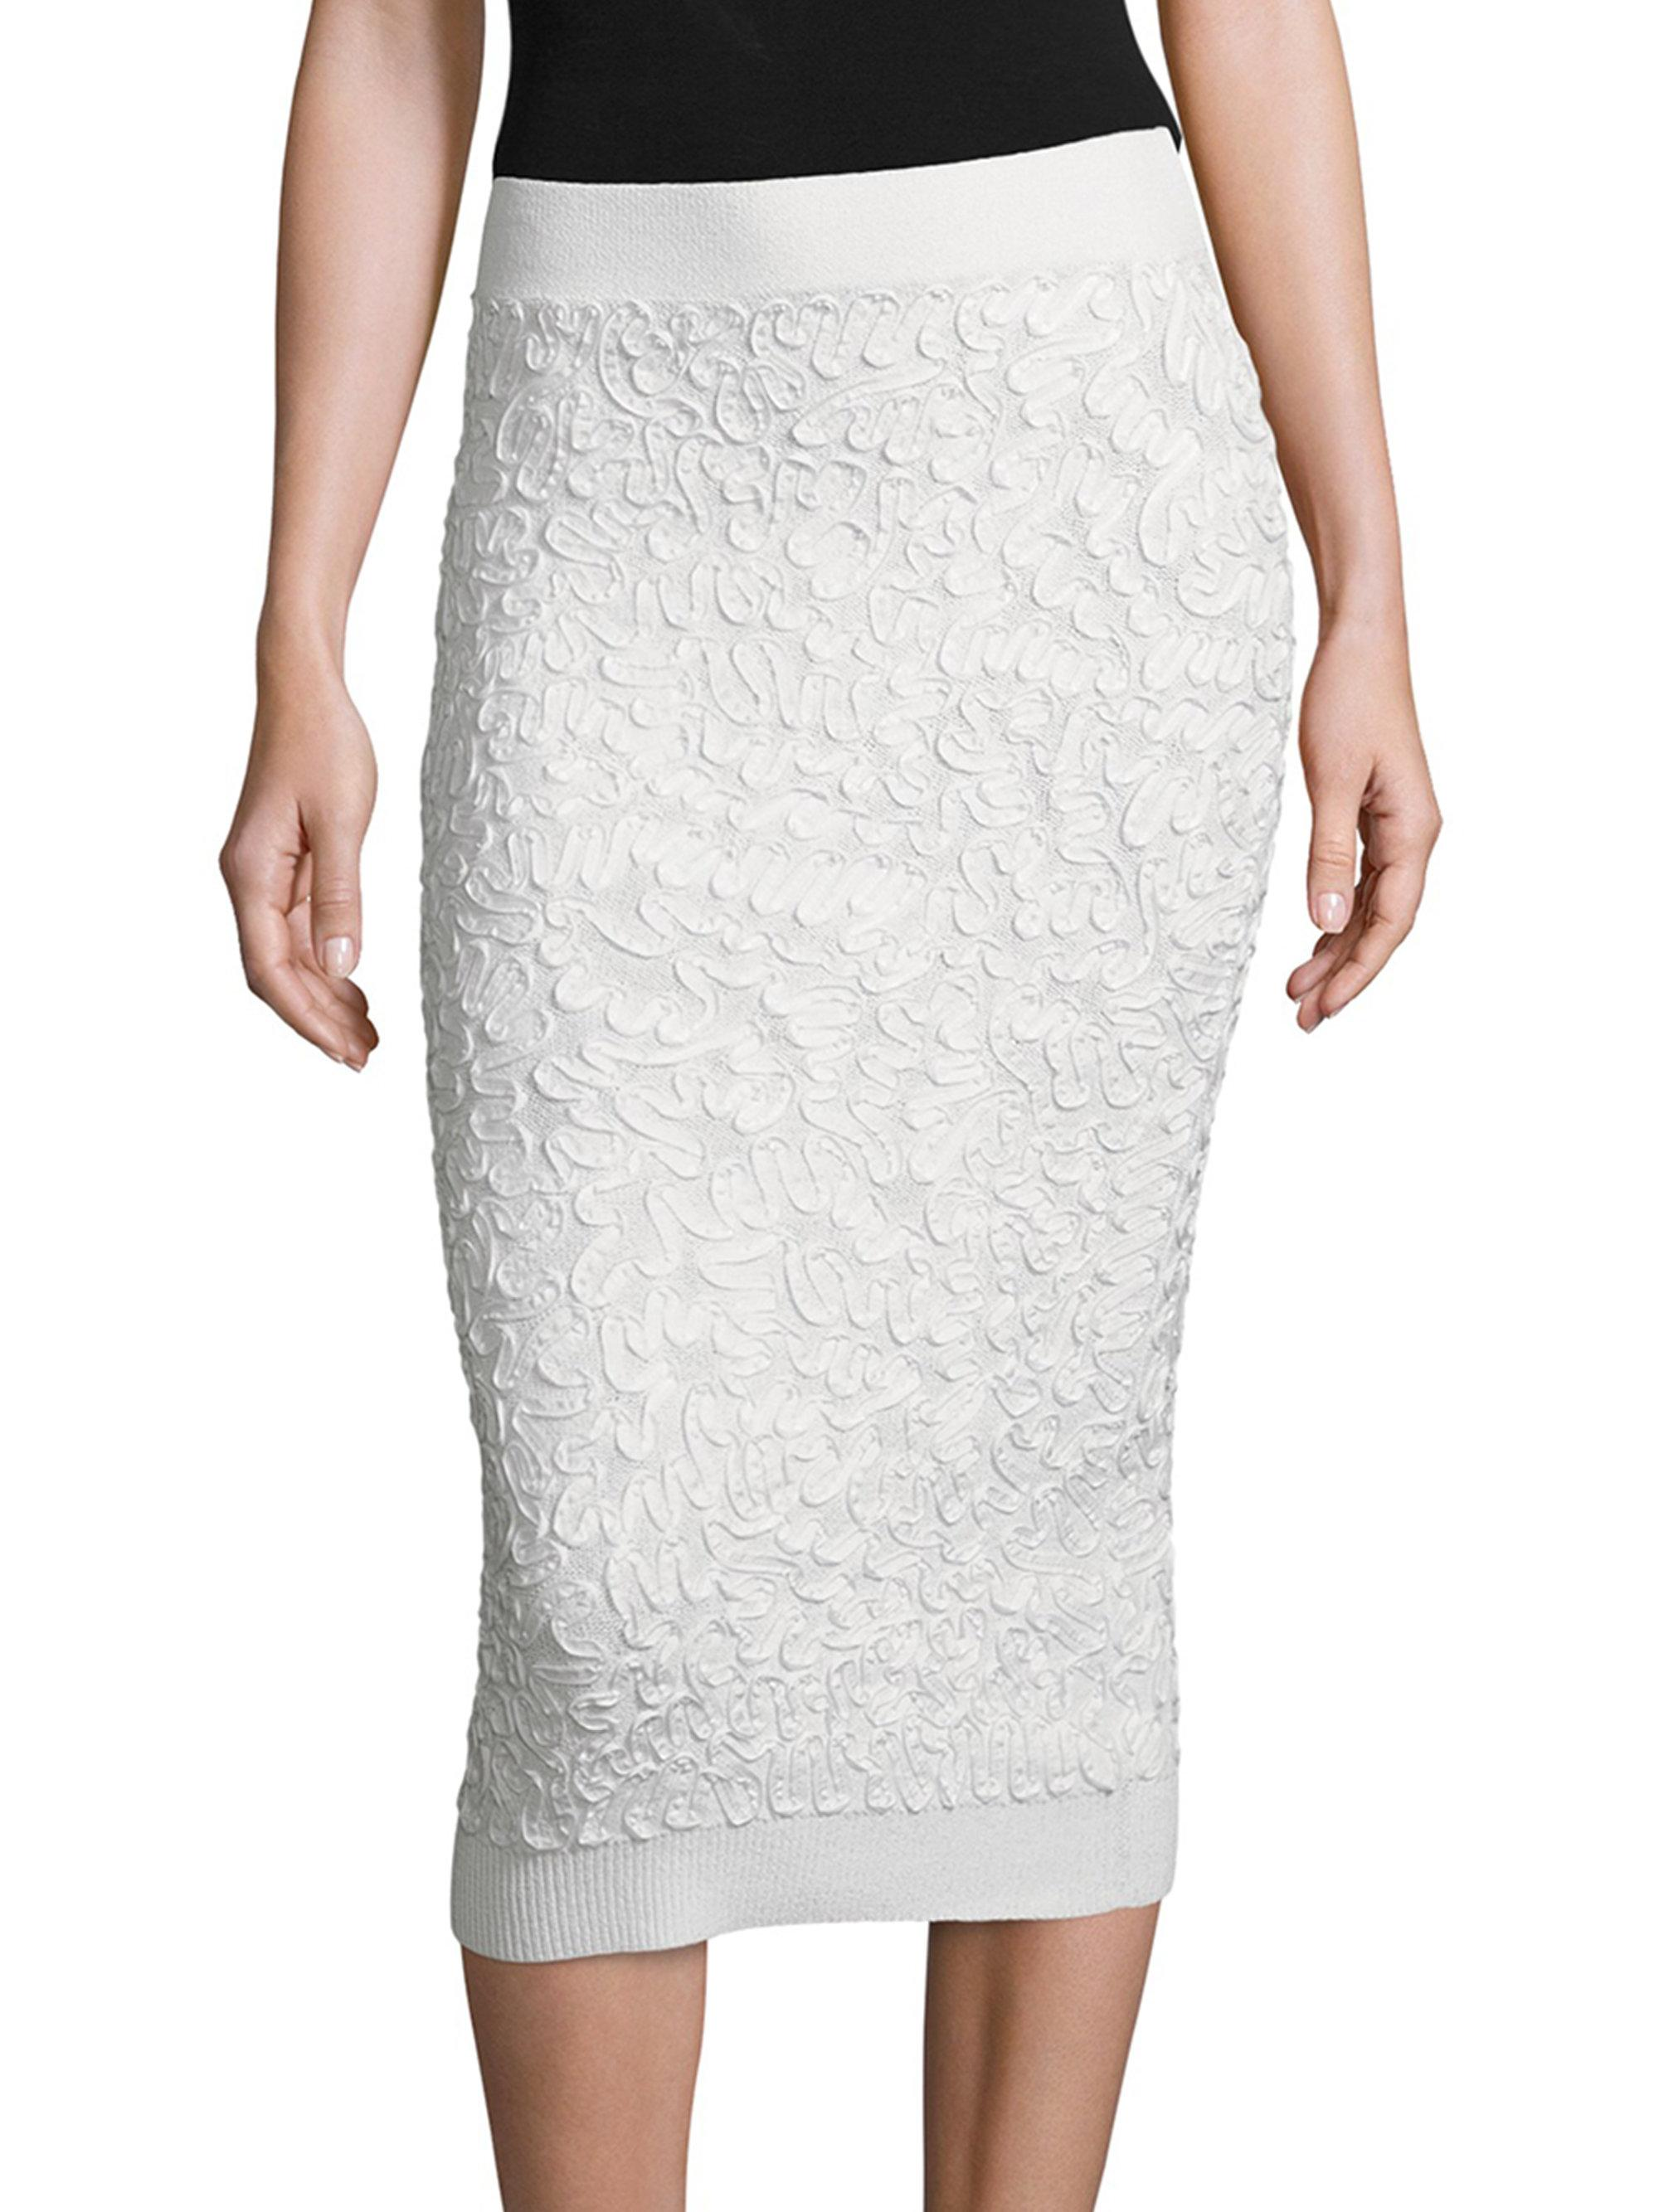 michael kors stretch pencil skirt in white lyst